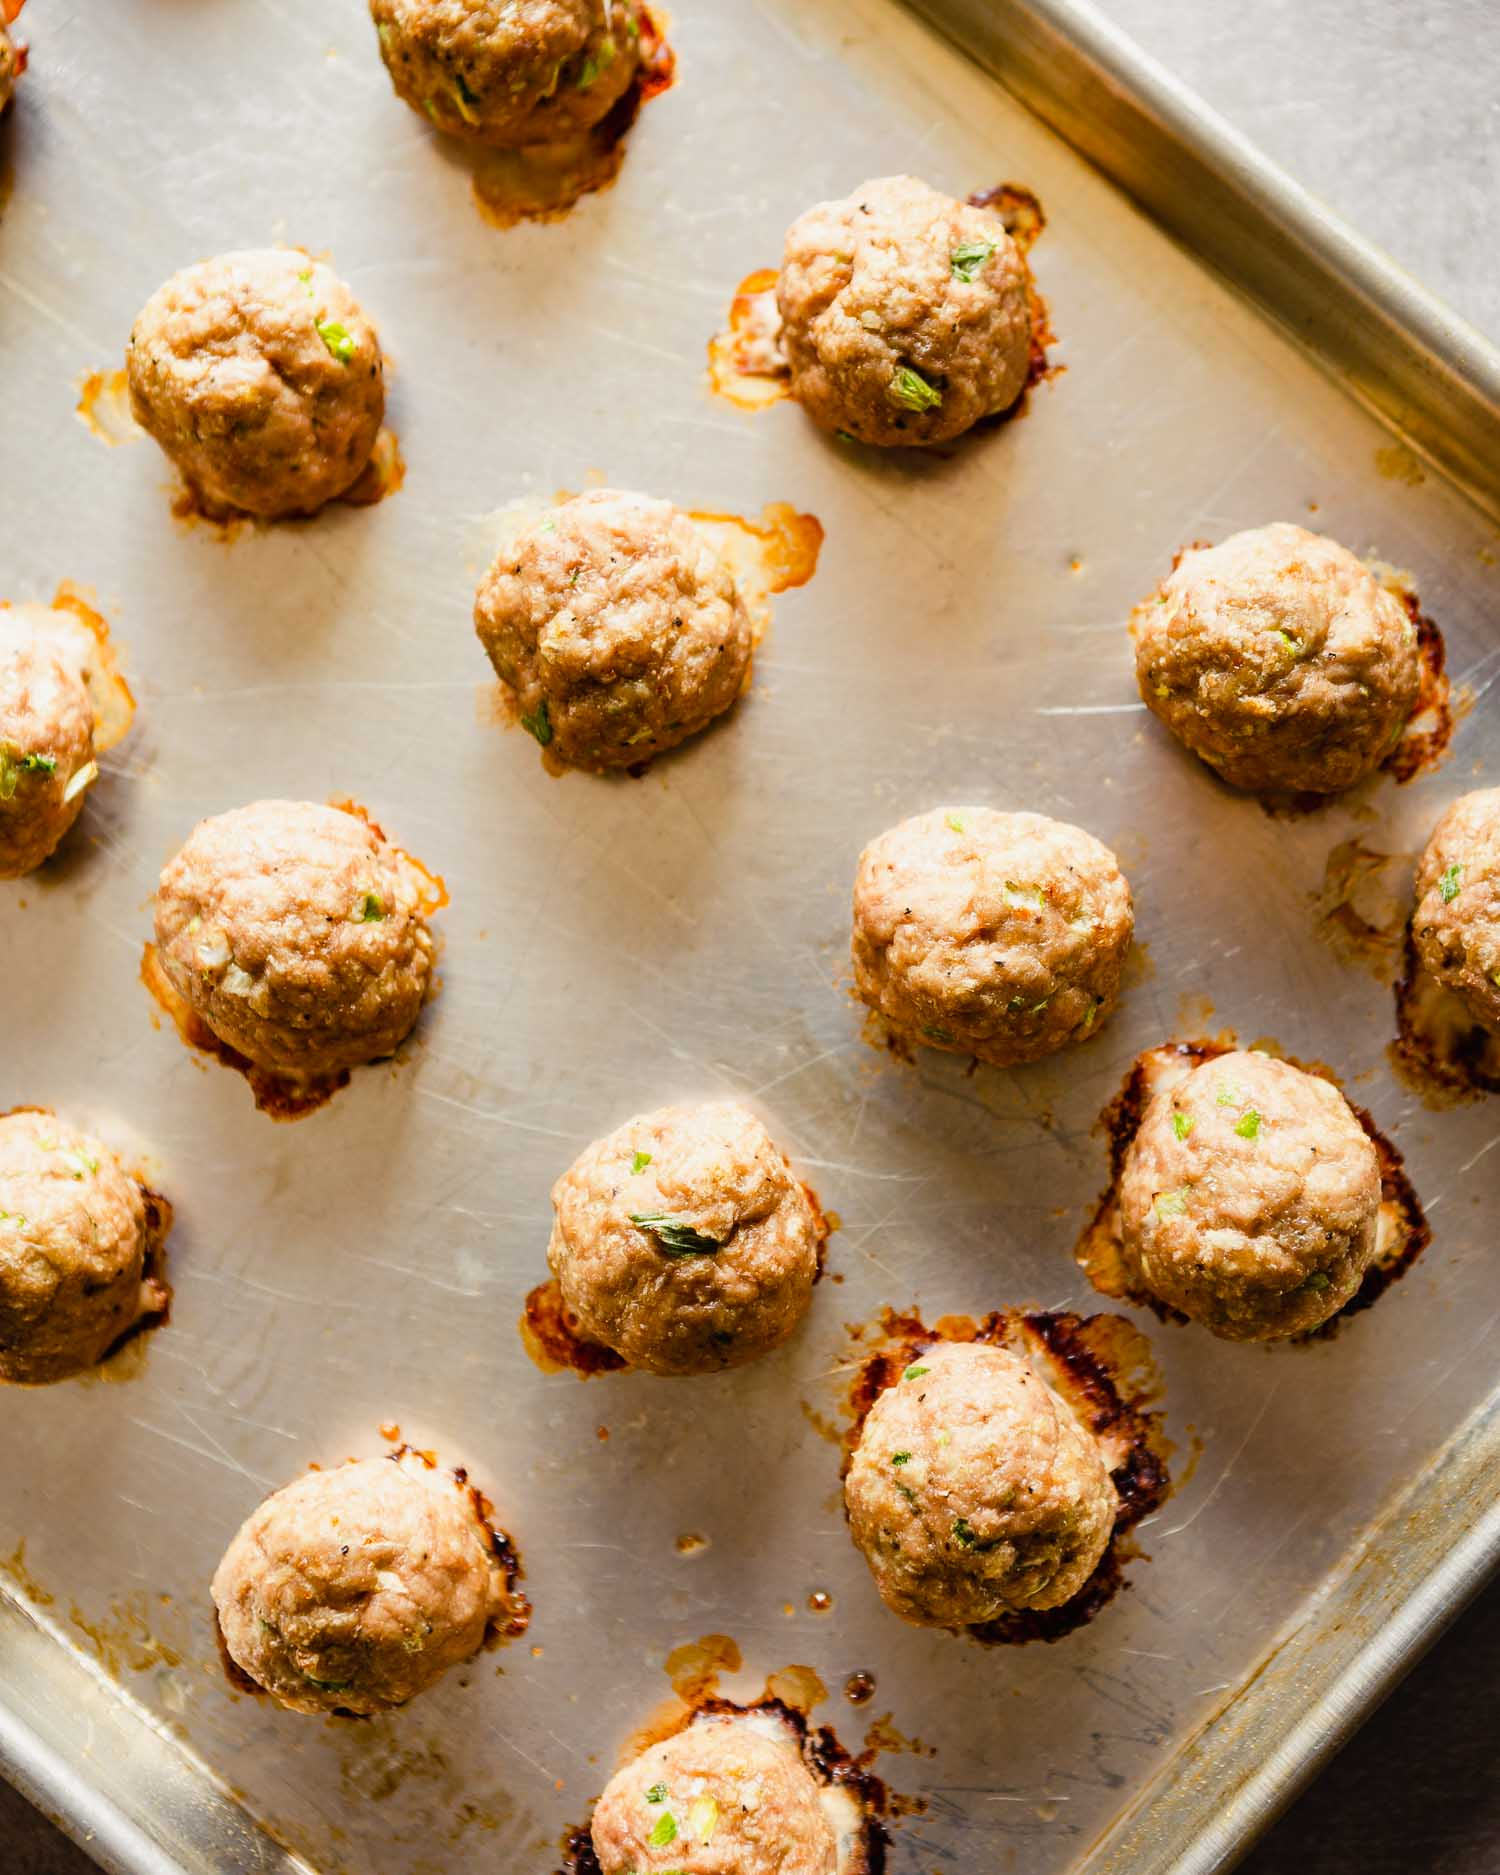 Overhead of baked turkey meatballs on a baking sheet